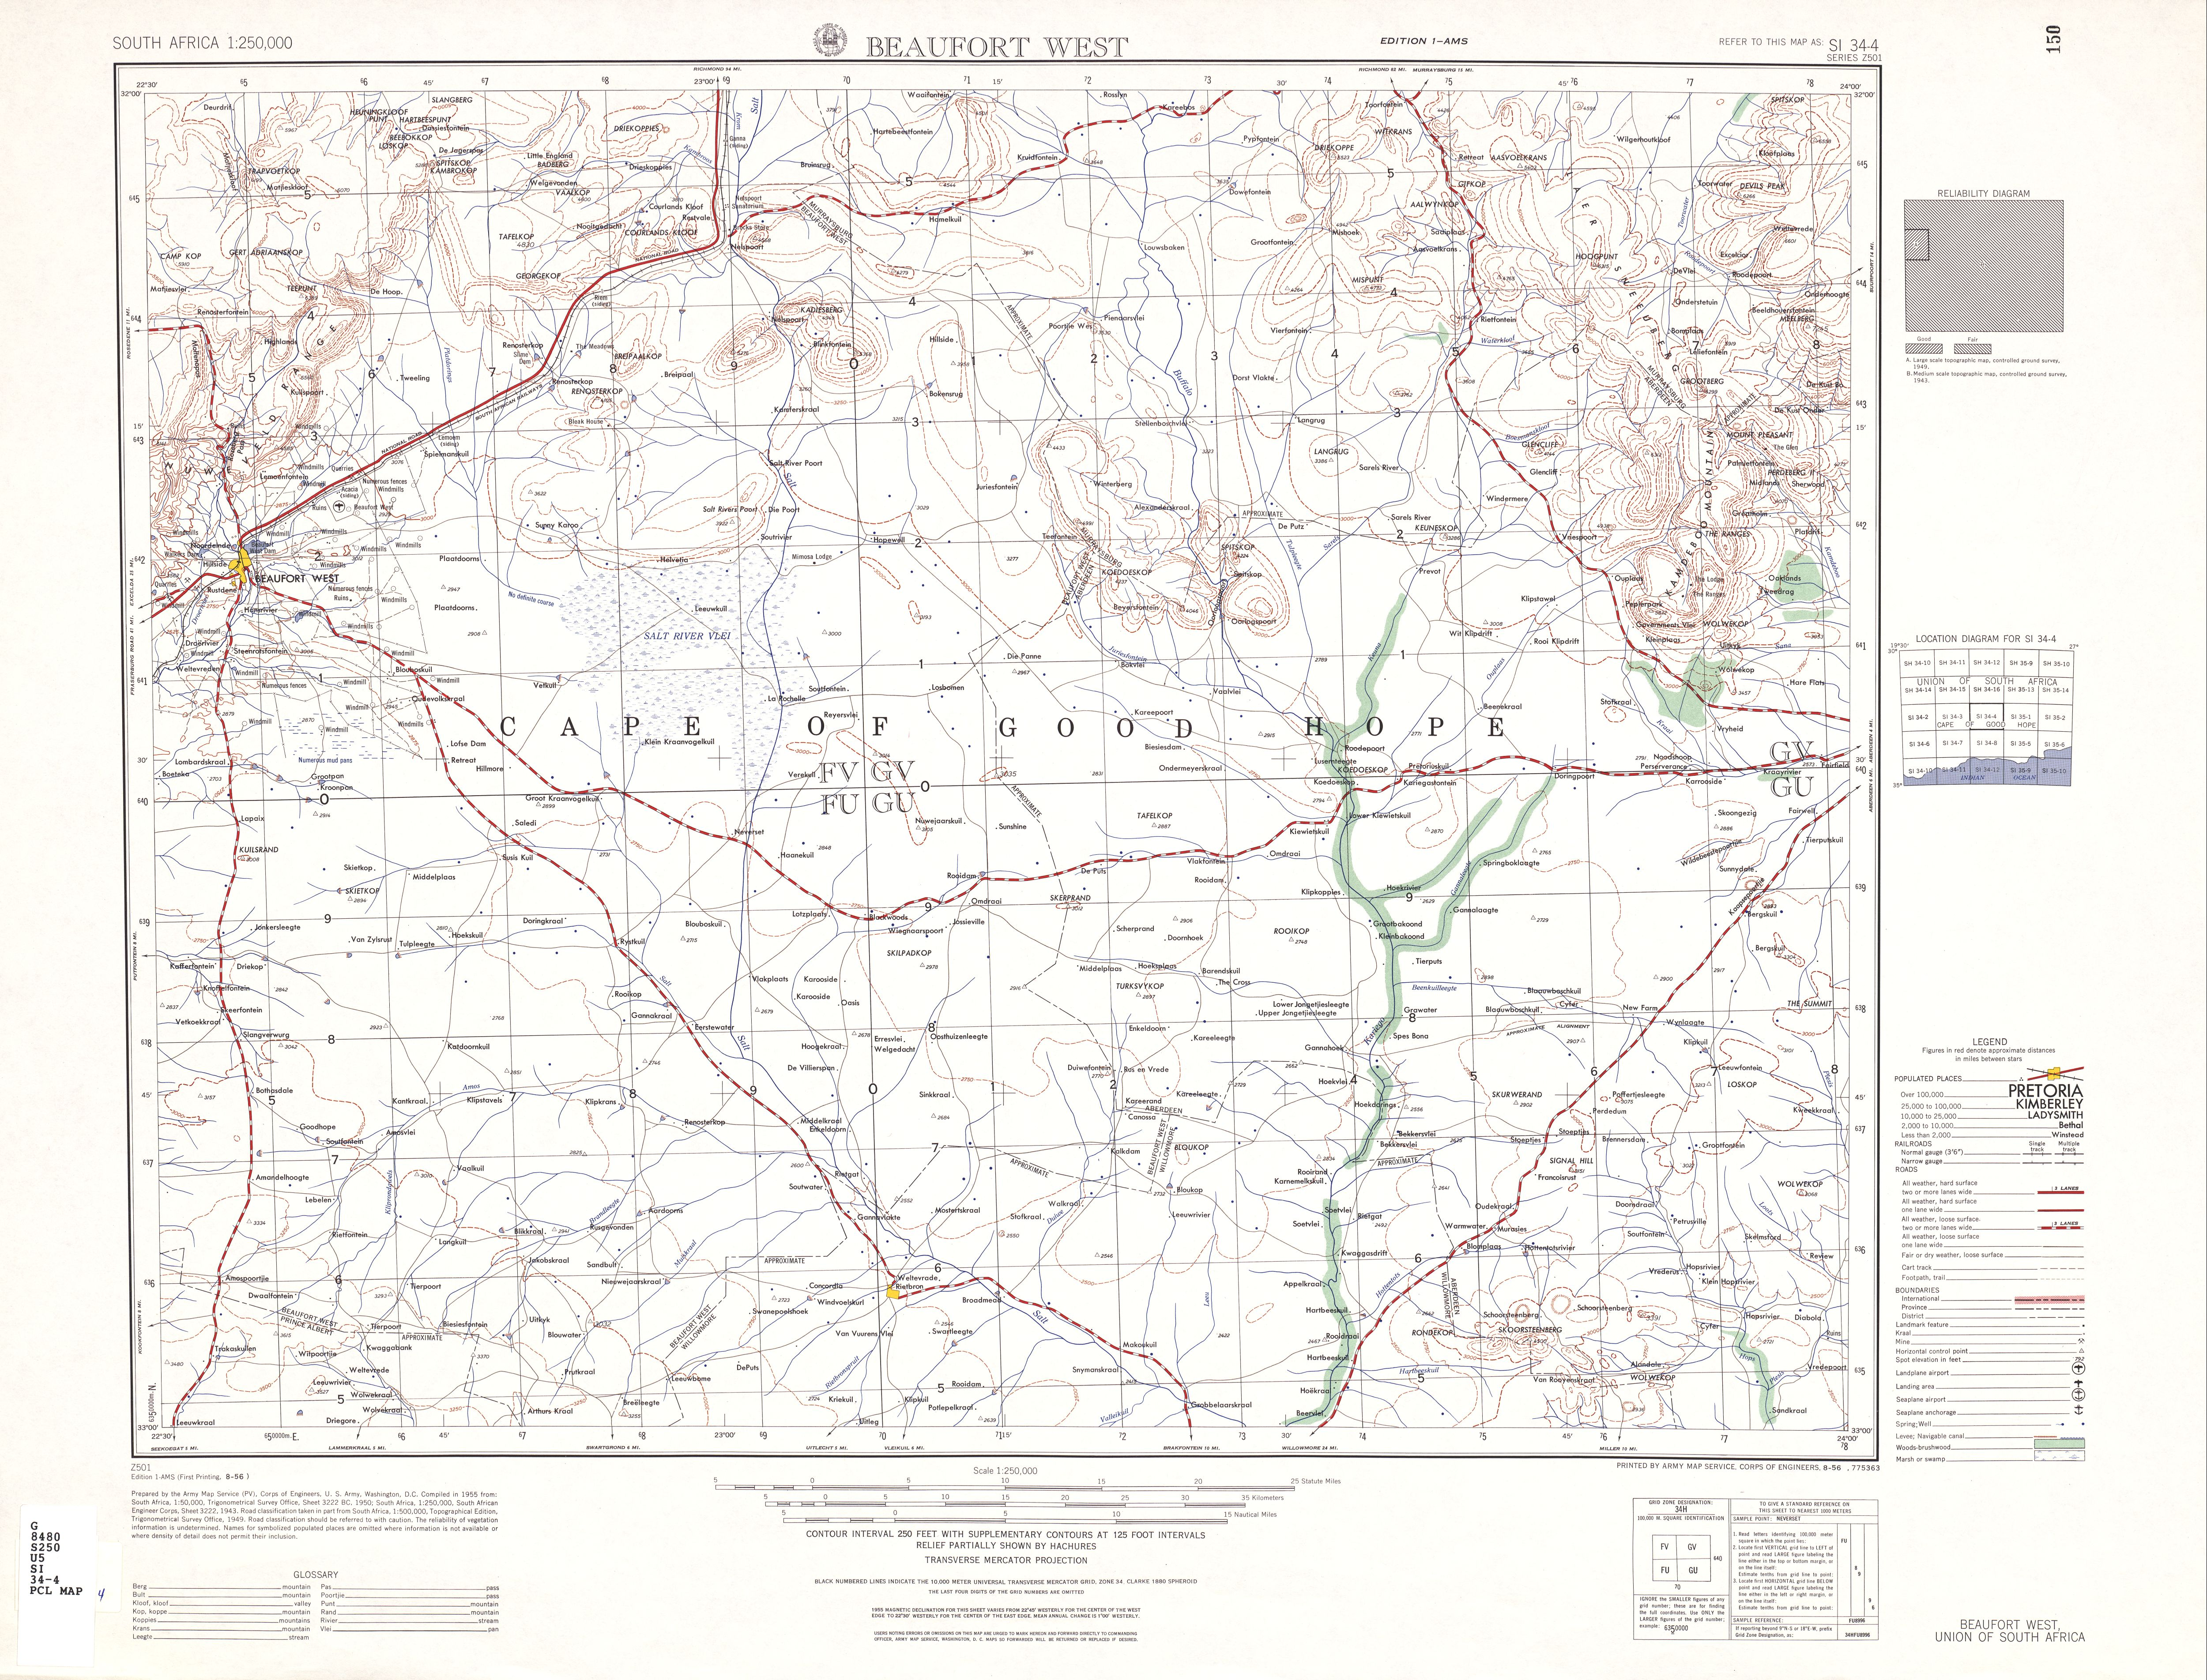 Beaufort West Topographic Map Sheet, Southern Africa 1954